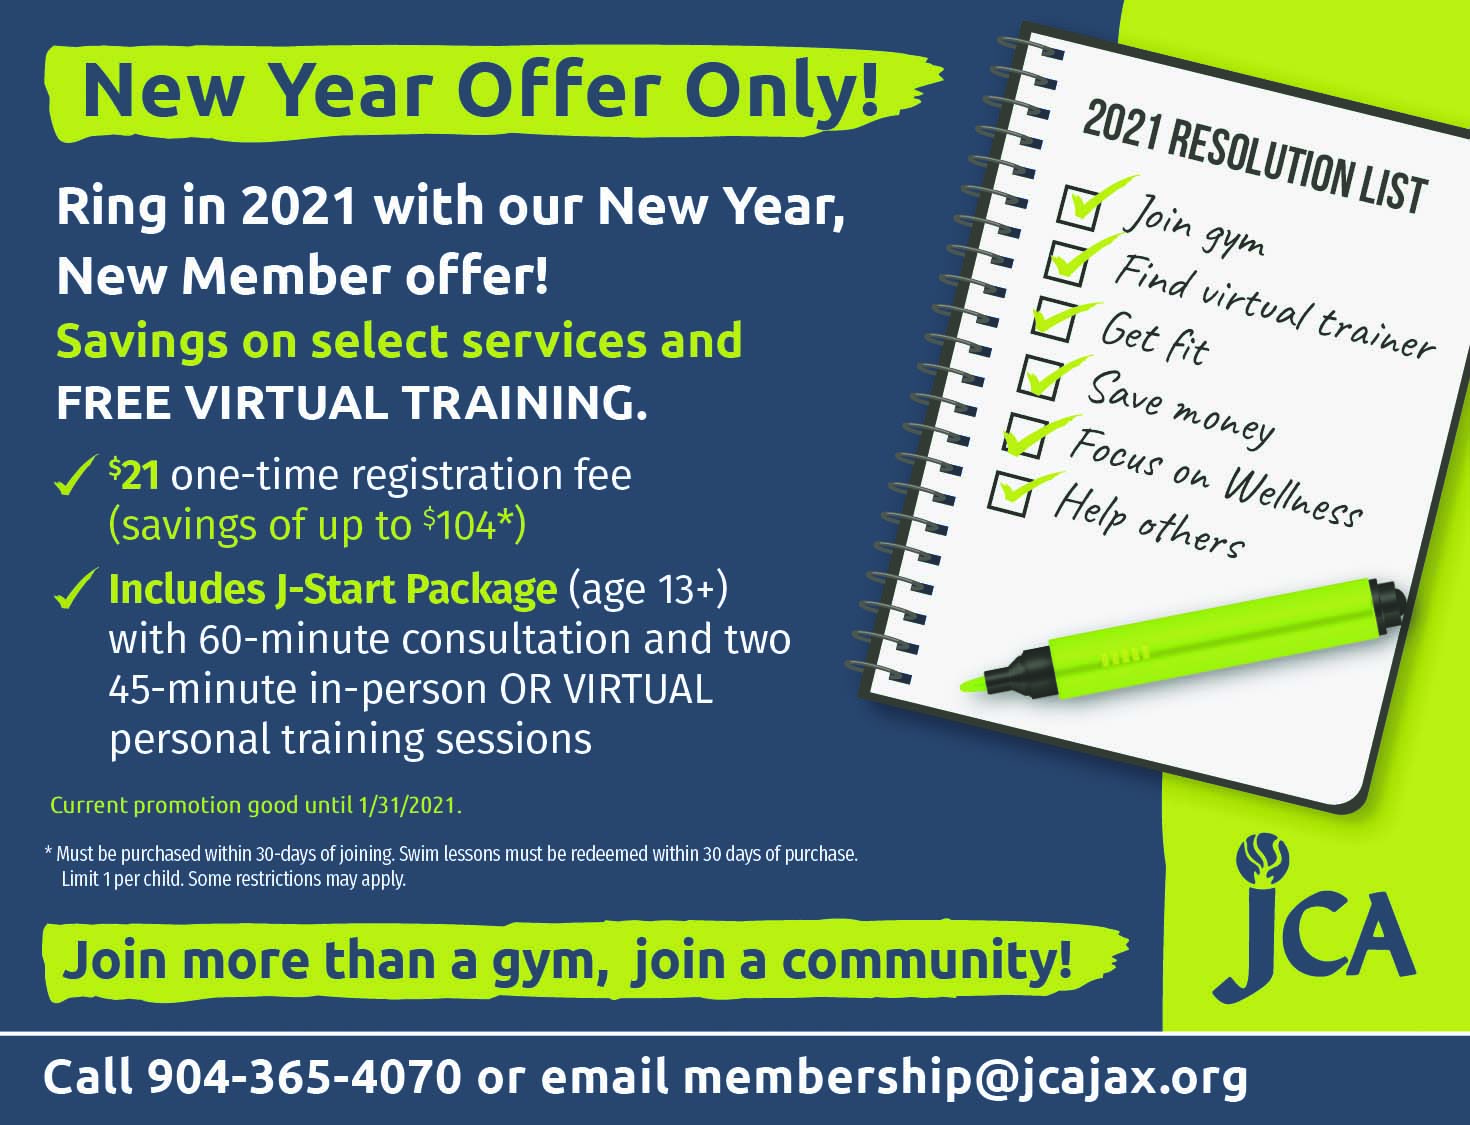 JCA Jopin more than a gym Join a community!